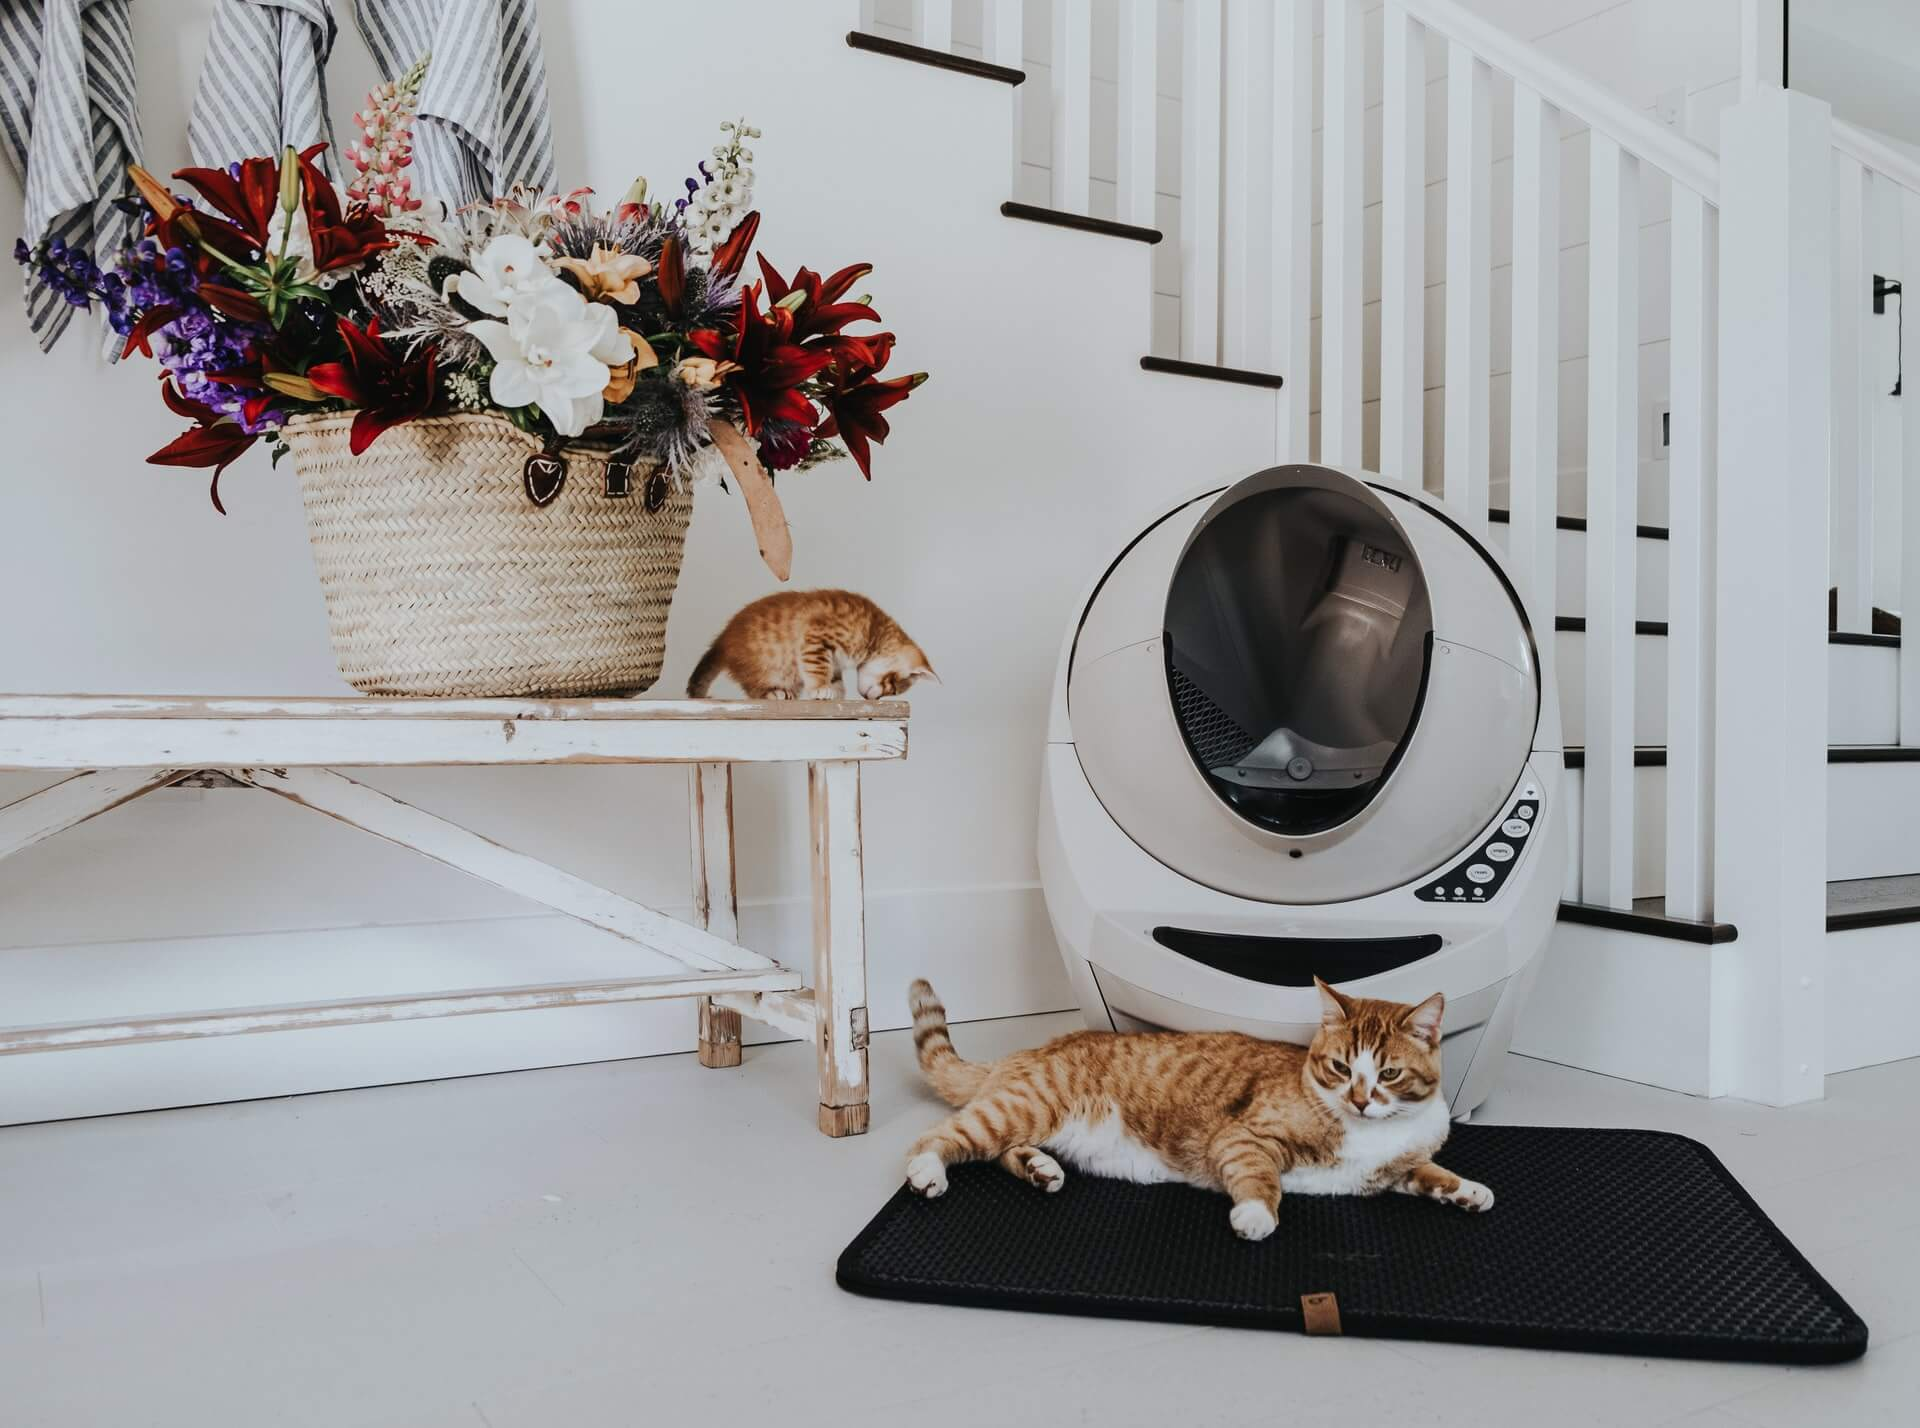 Keep your cat's litter box clean and change the litter regularly